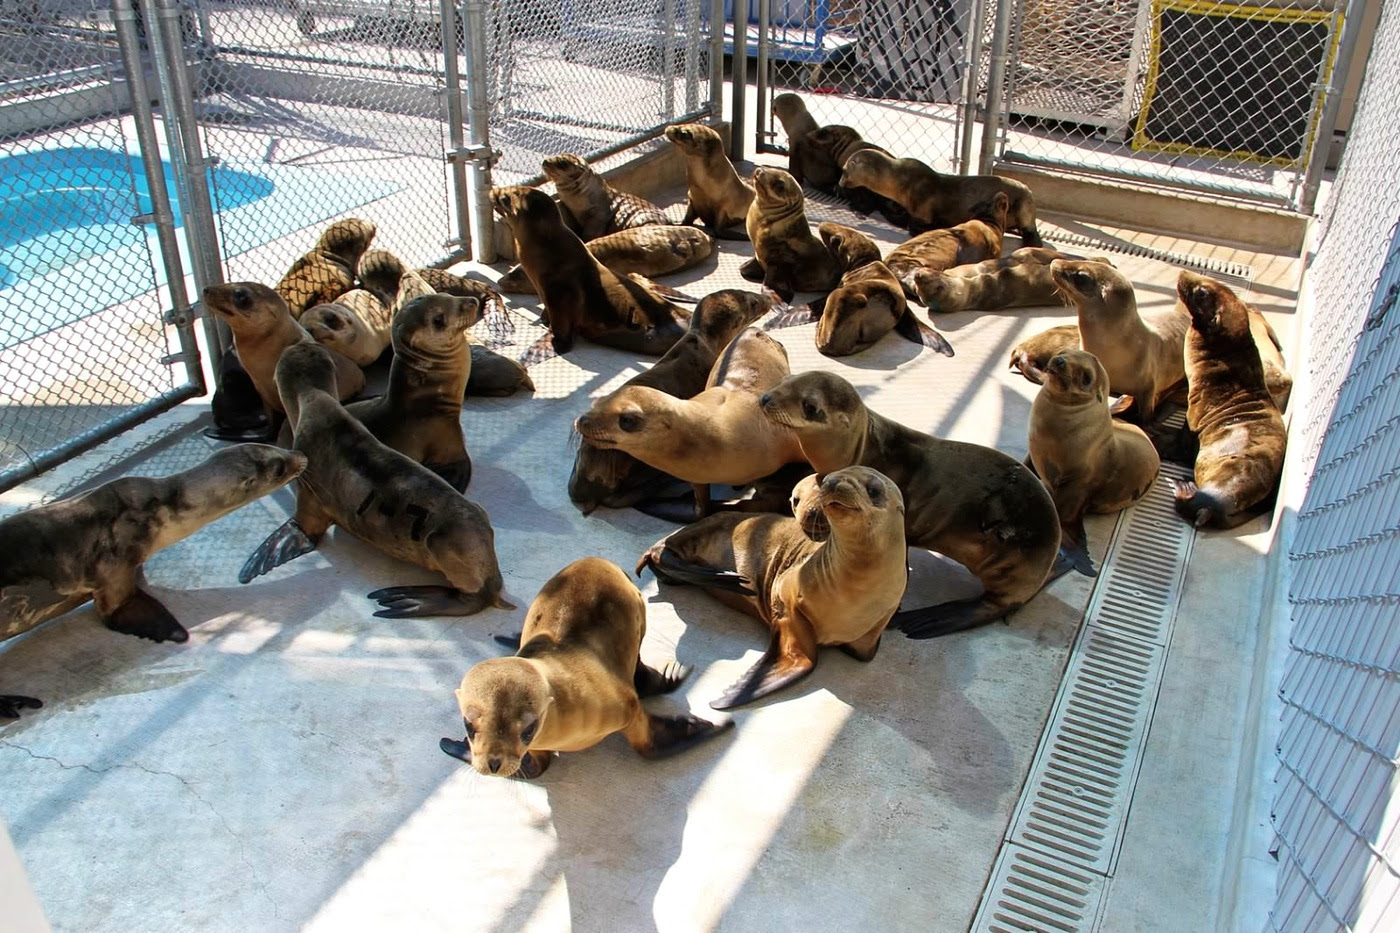 Emaciated juvenile sea lions undergoing rehabilitation at the Marine Mammal Center in California. Their plight is thought to have been triggered by the unusually warm water conditions that persist in the coastal Pacific Ocean, upsetting the usual food web upon which sea lions and other wildlife depend.